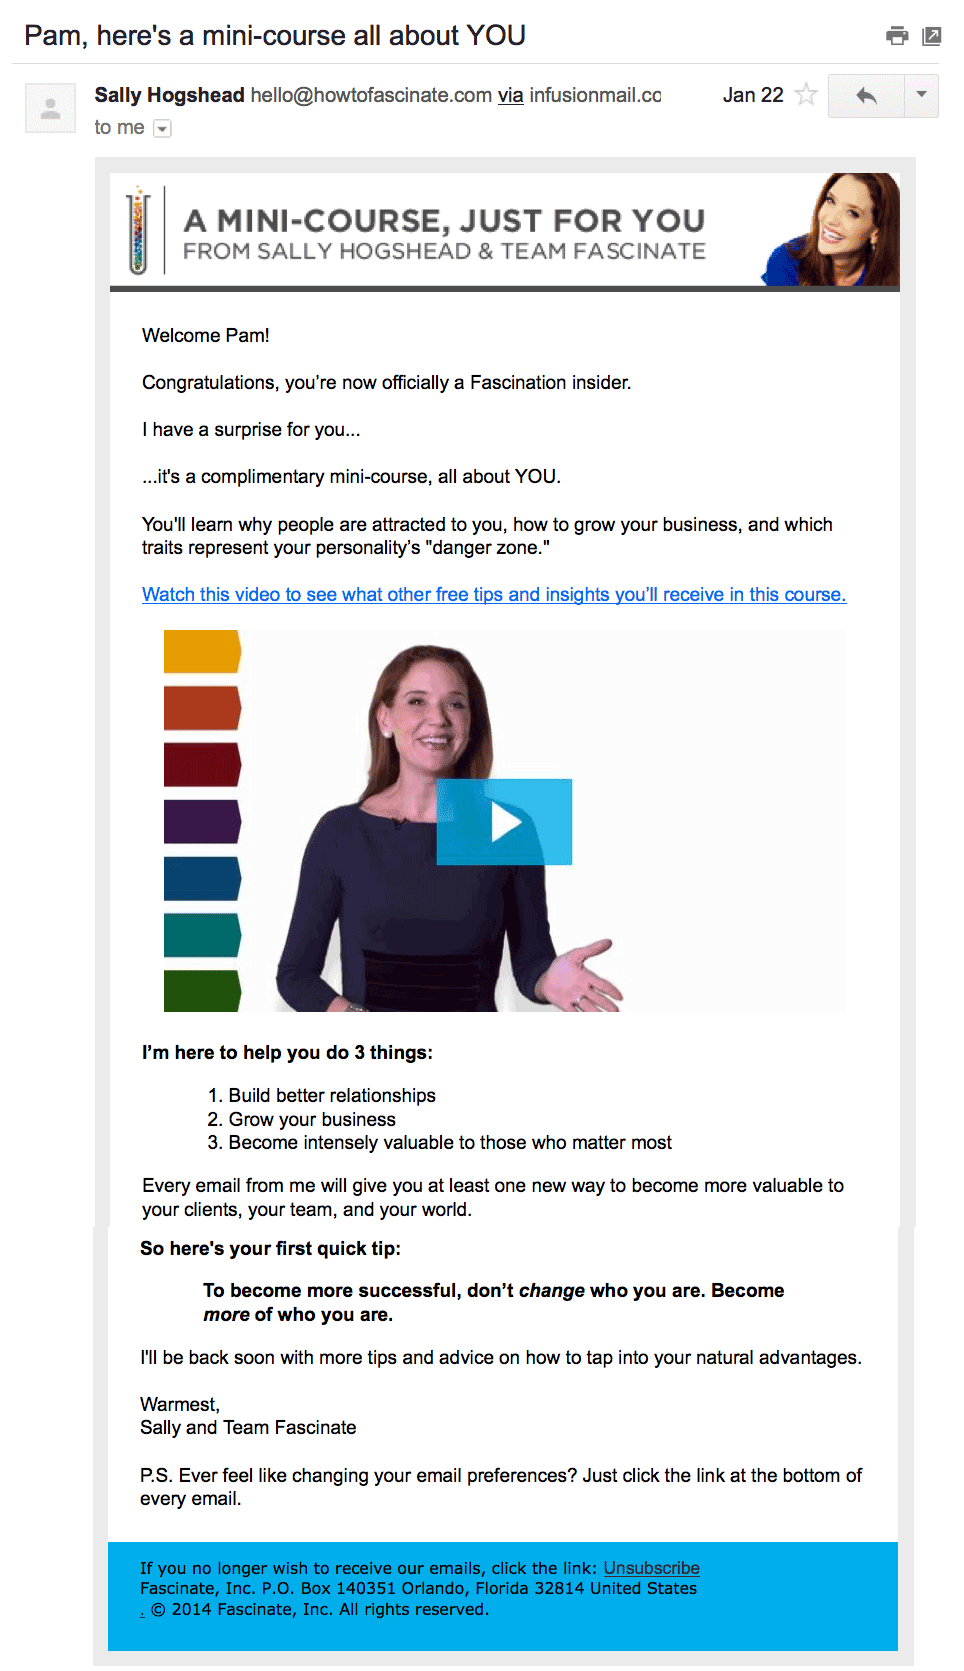 another example of what looks like a video in an email, but is actually an image